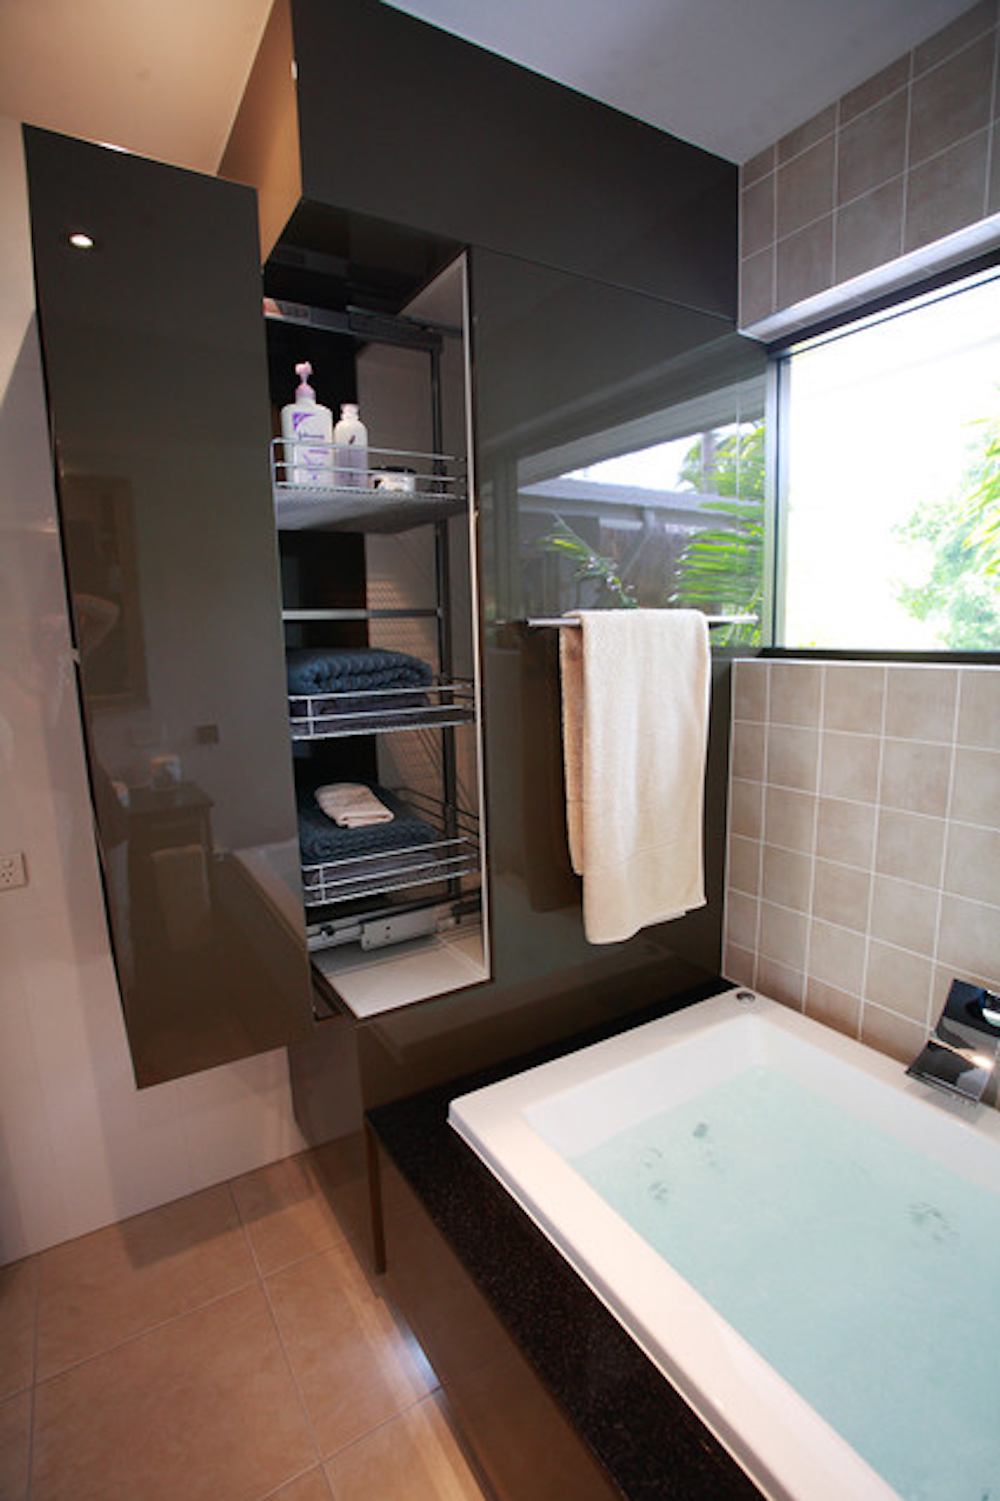 Extra Storage Space in Bathroom